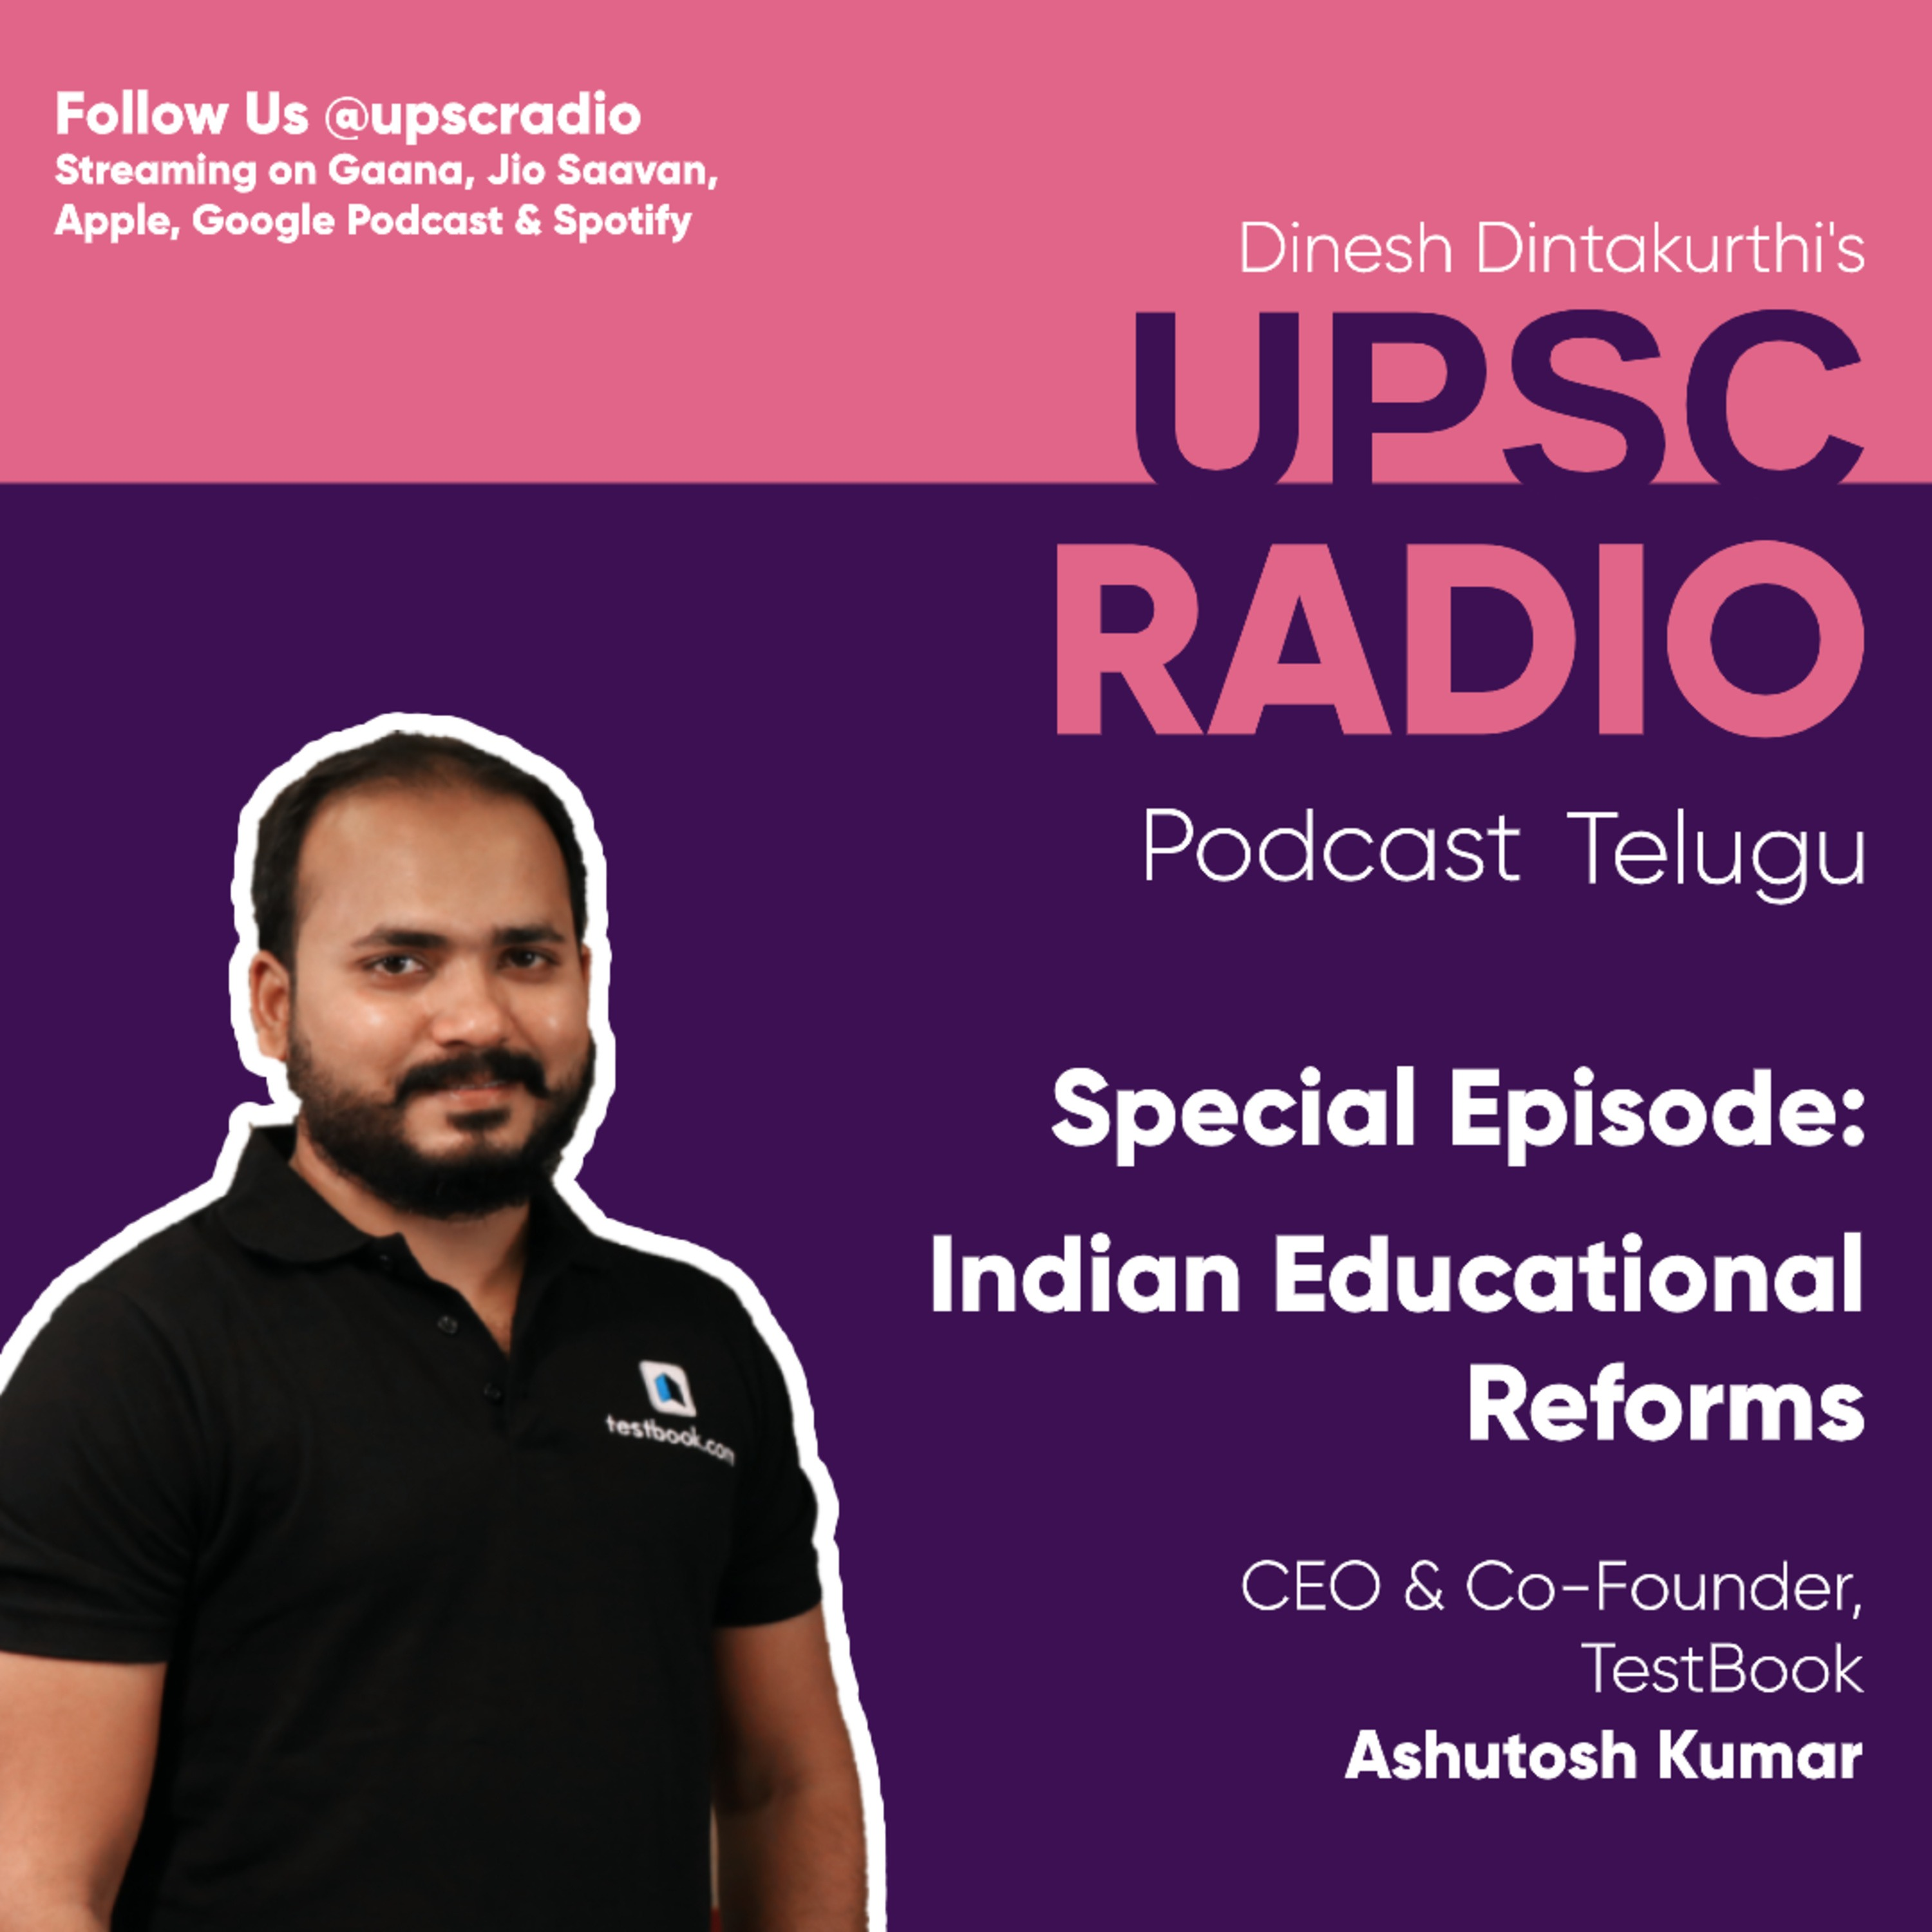 Special Episode: Indian Educational Reforms with Ashutosh Kumar